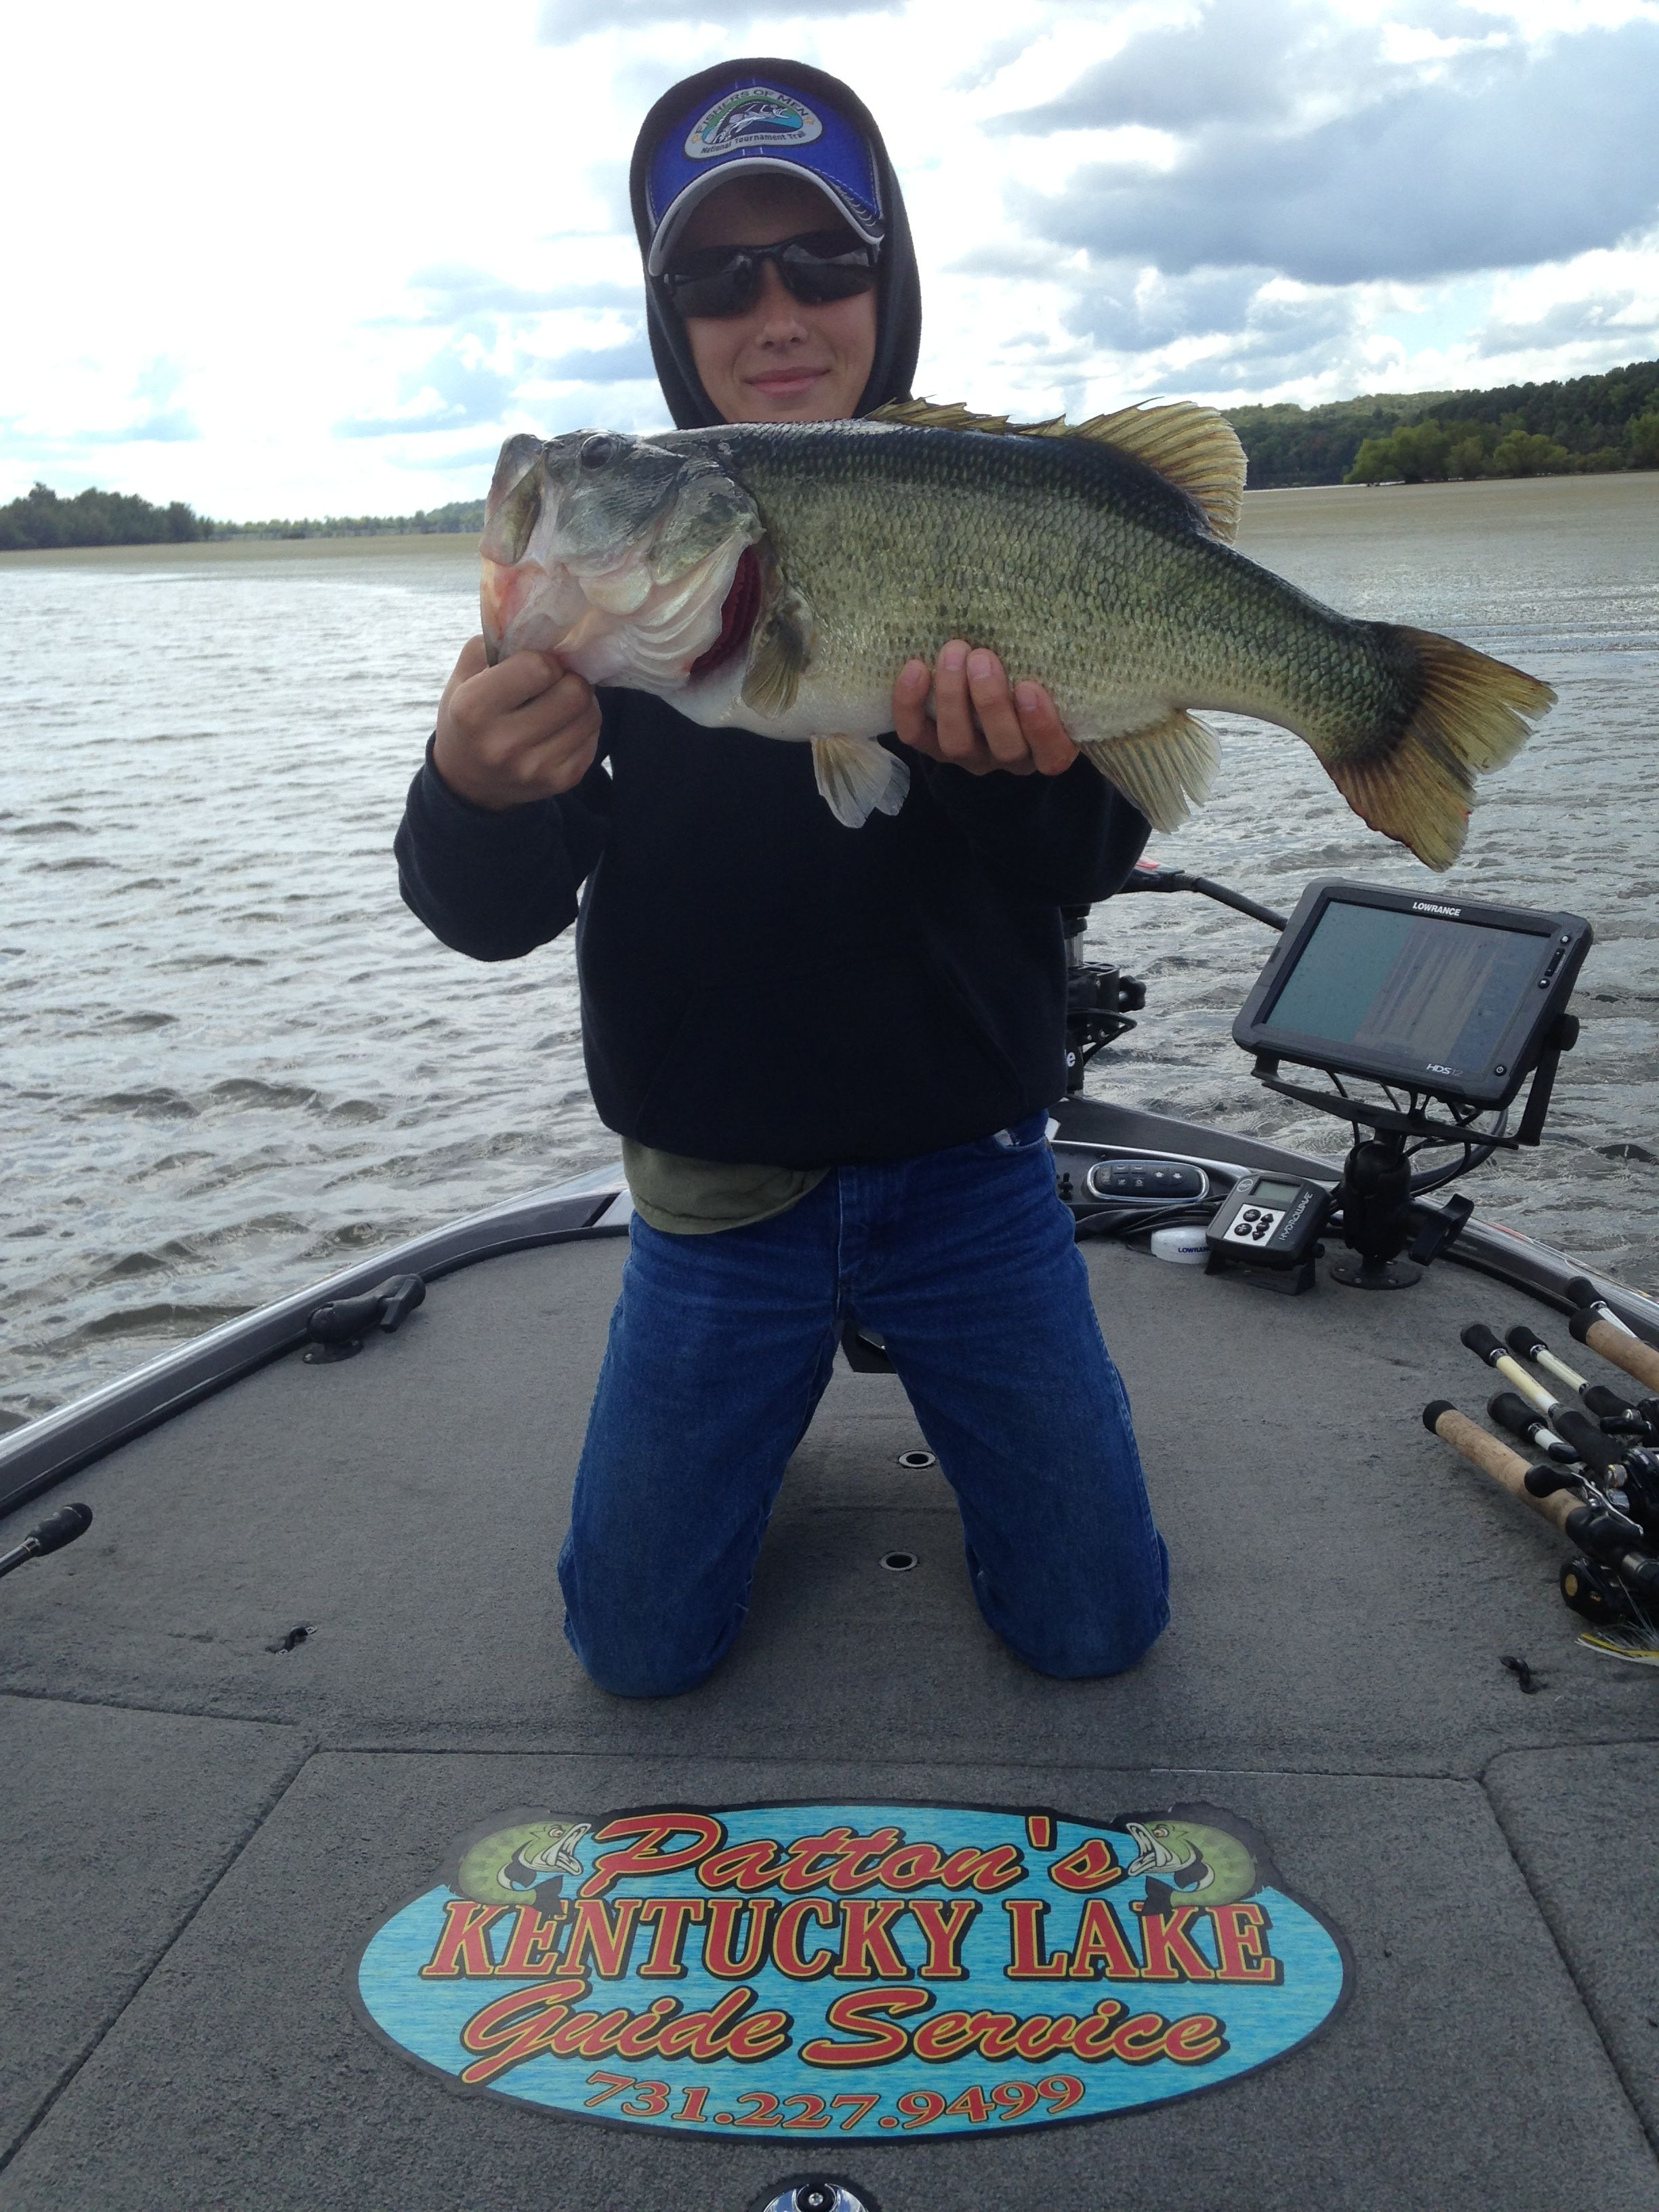 Ky lake guide 12 oct 2015 1 for Kentucky lake fishing report